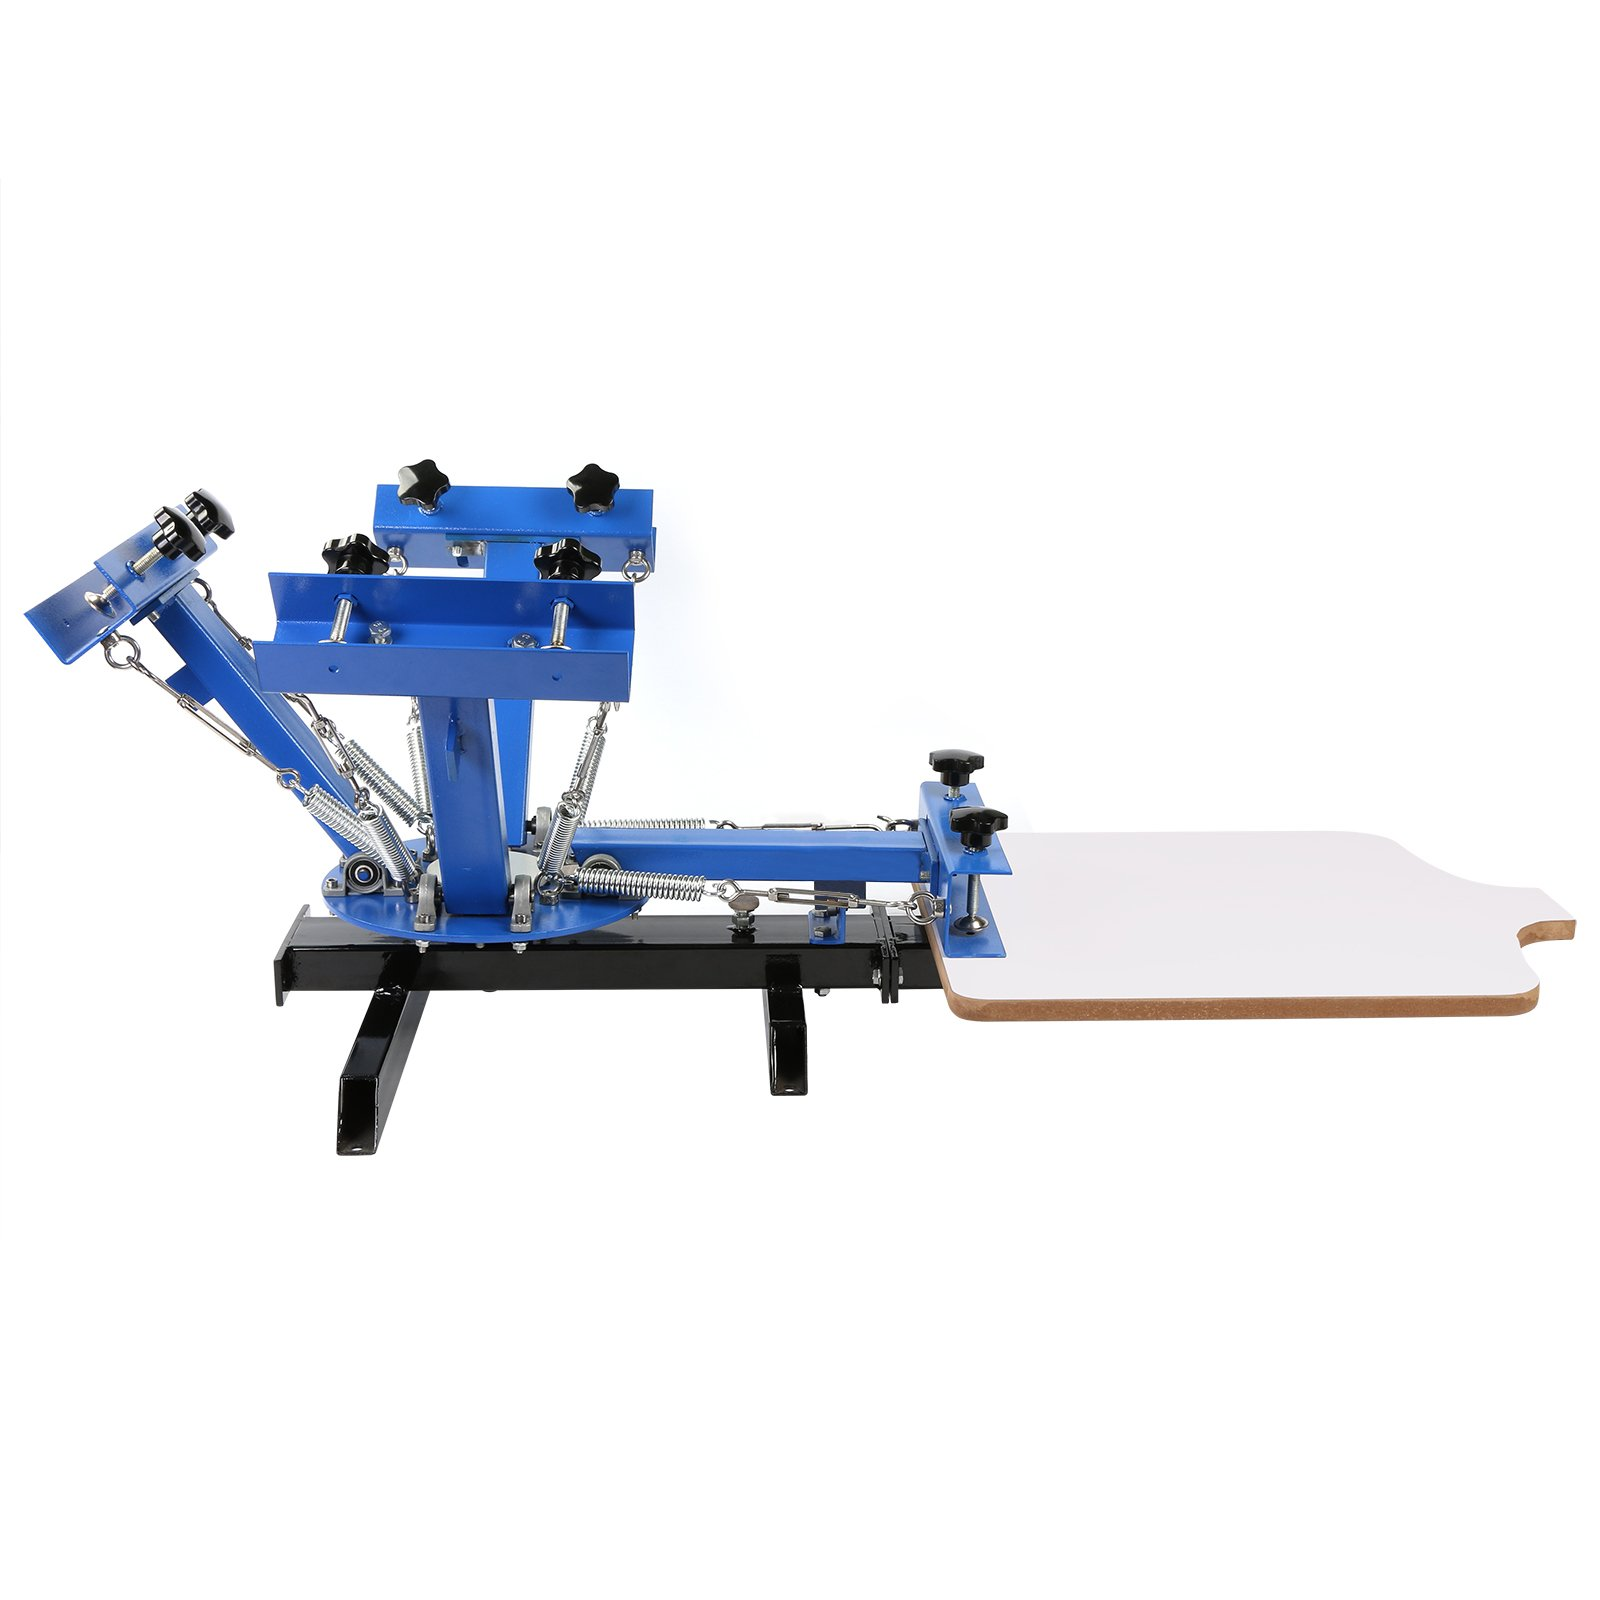 BestEquip Screen Printing Machine 1 Station 4 Color Screen Printing for T-shirt DIY Screen Printing Press Silk Screen Removable Pallet by BestEquip